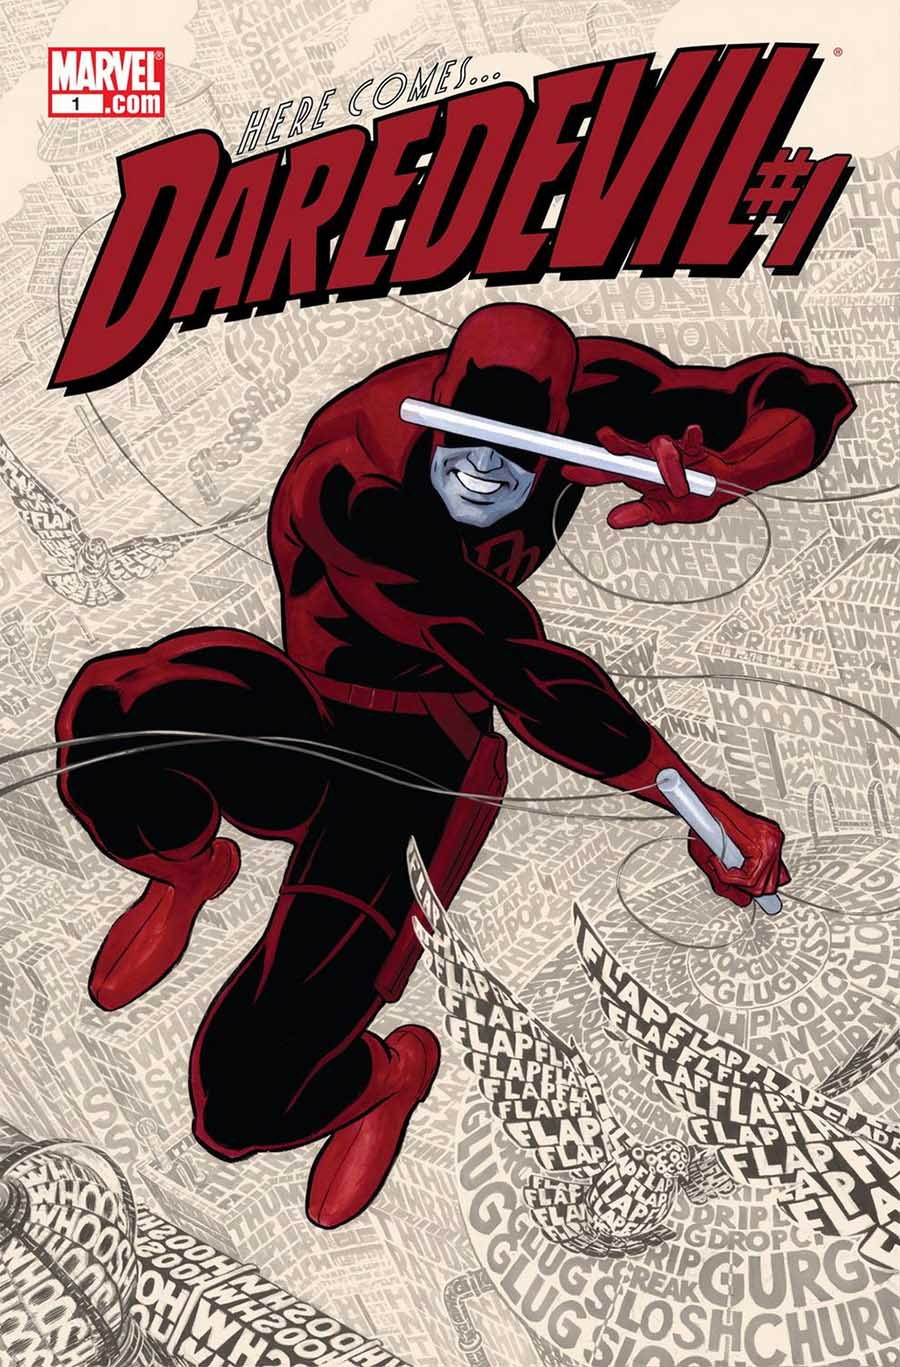 Daredevil (Mark Waid)